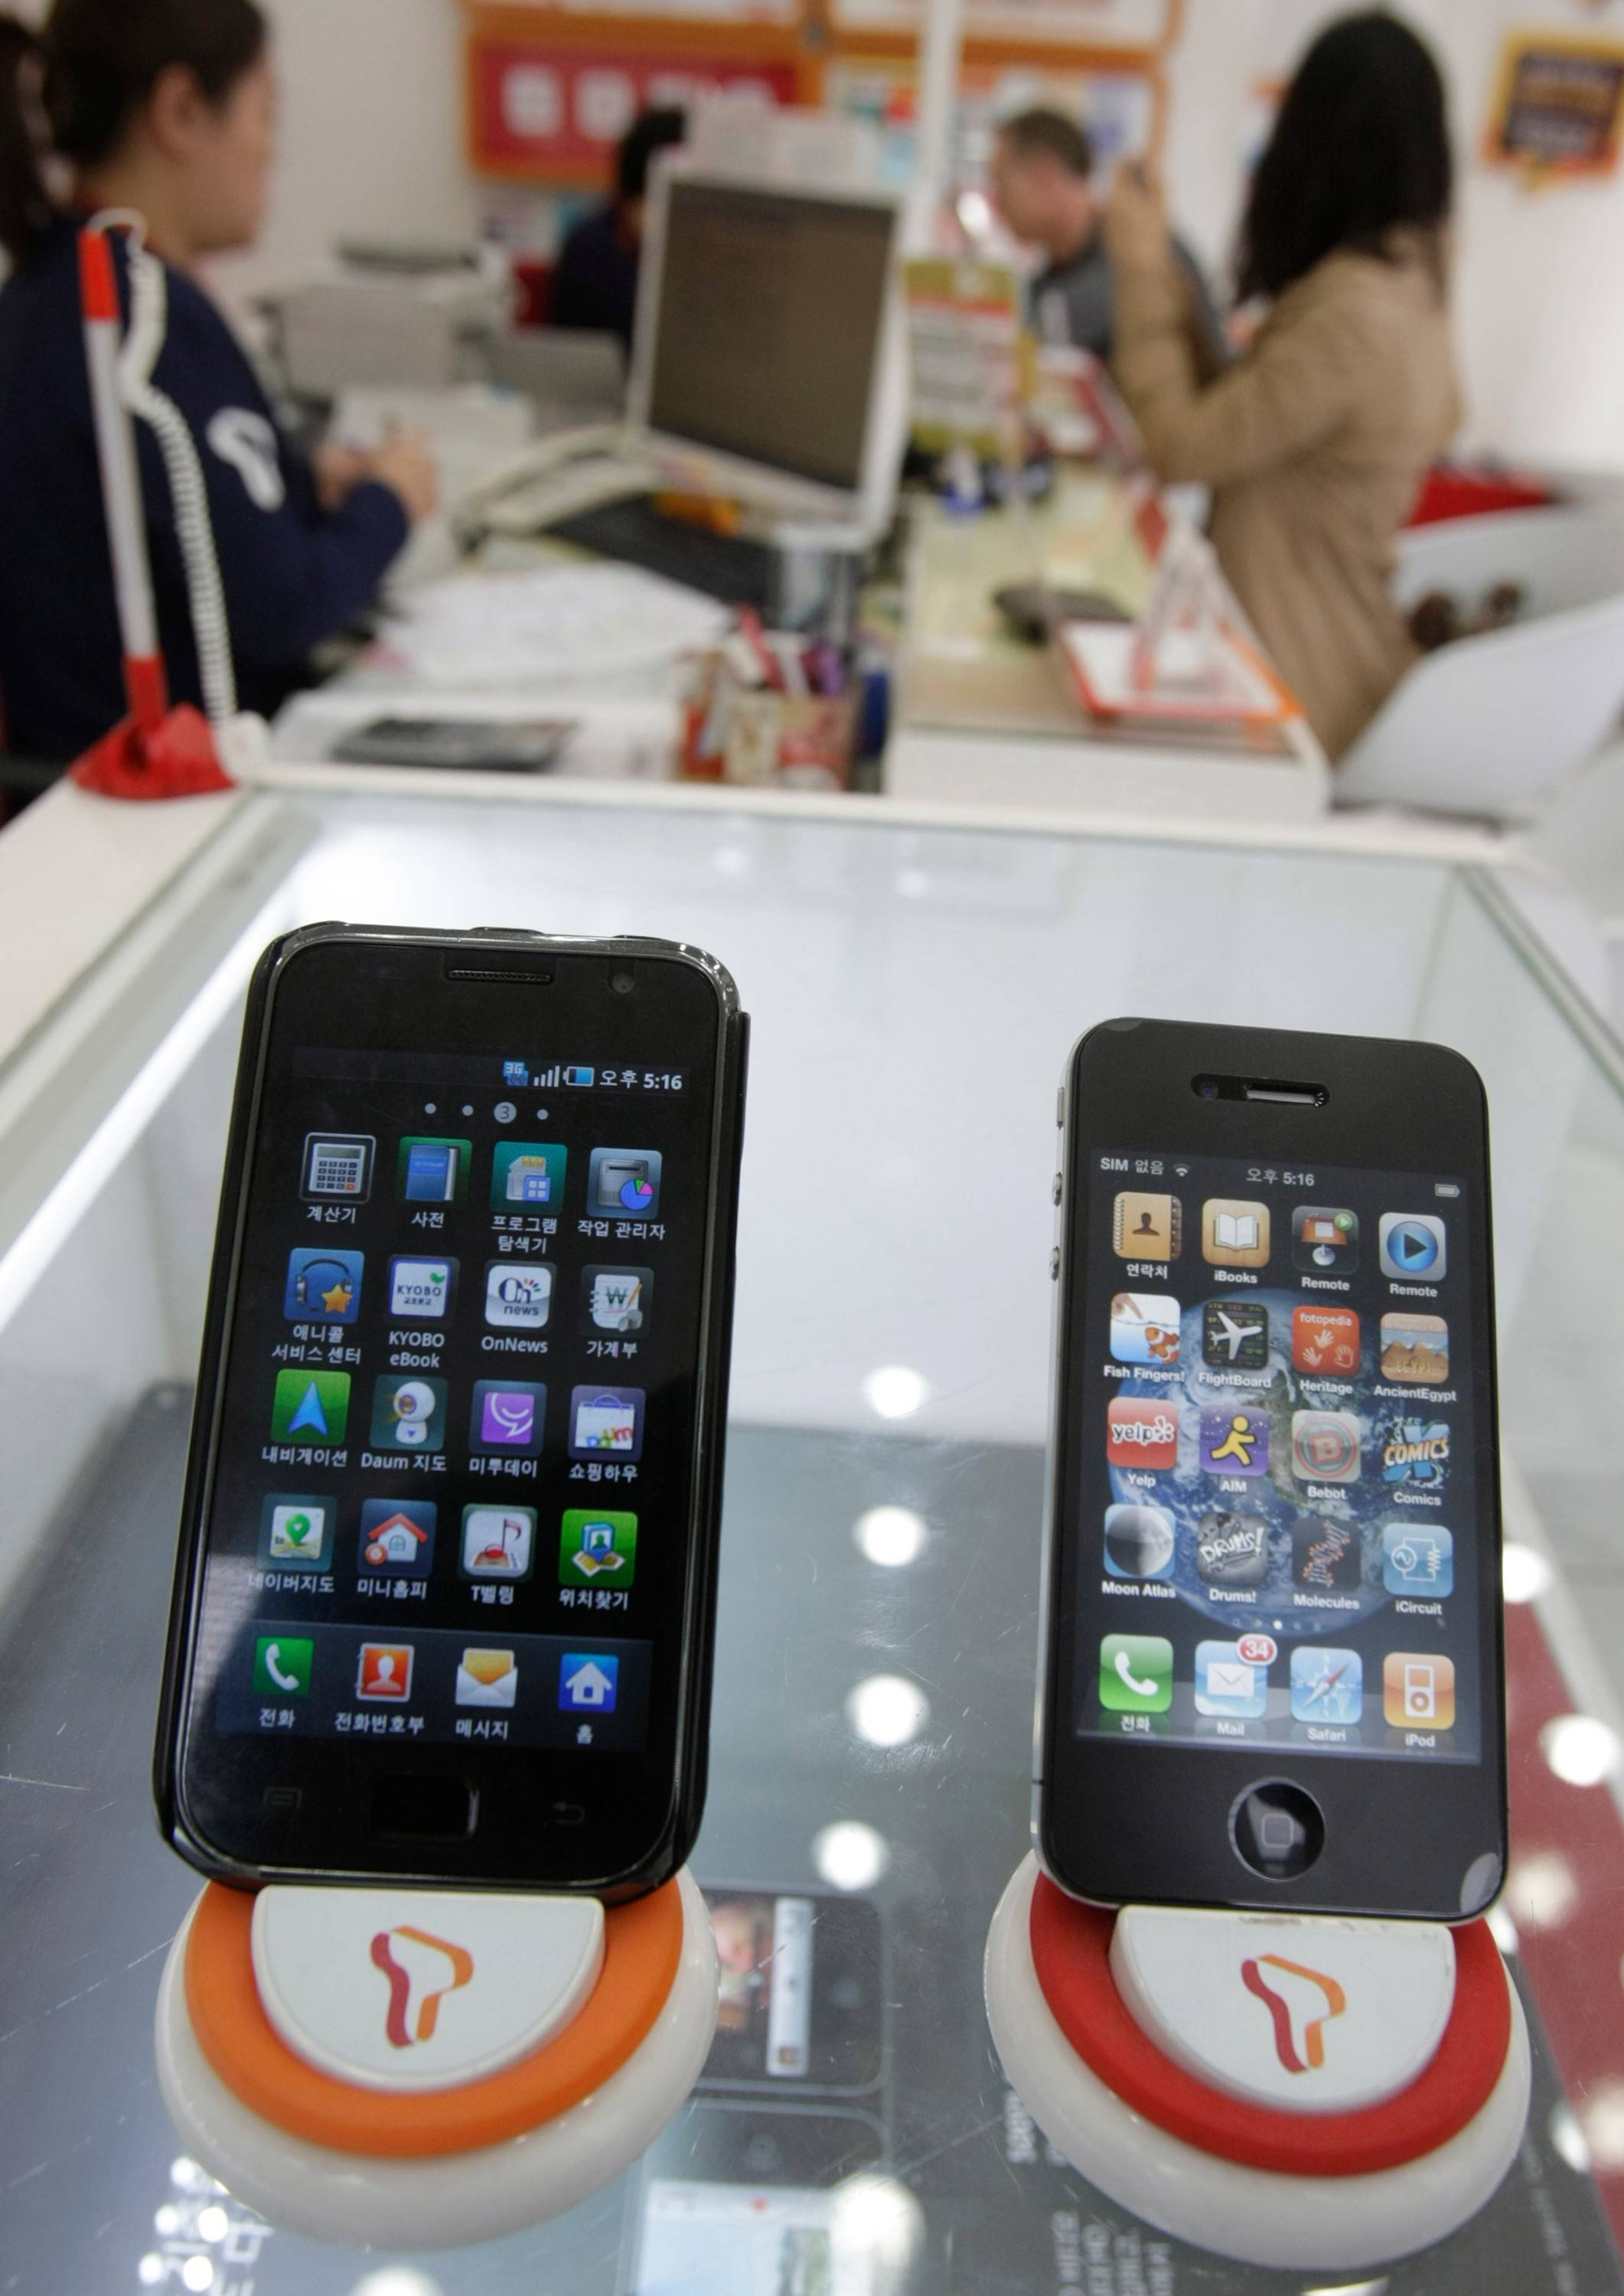 Samsung Electronics' Galaxy S, left, and Apple's iPhone 4 at a mobile phone shop in Seoul, South Korea. The two companies face a $3.9 billion challenge as they prepare to sell new marquee phones in the world's biggest wireless market.